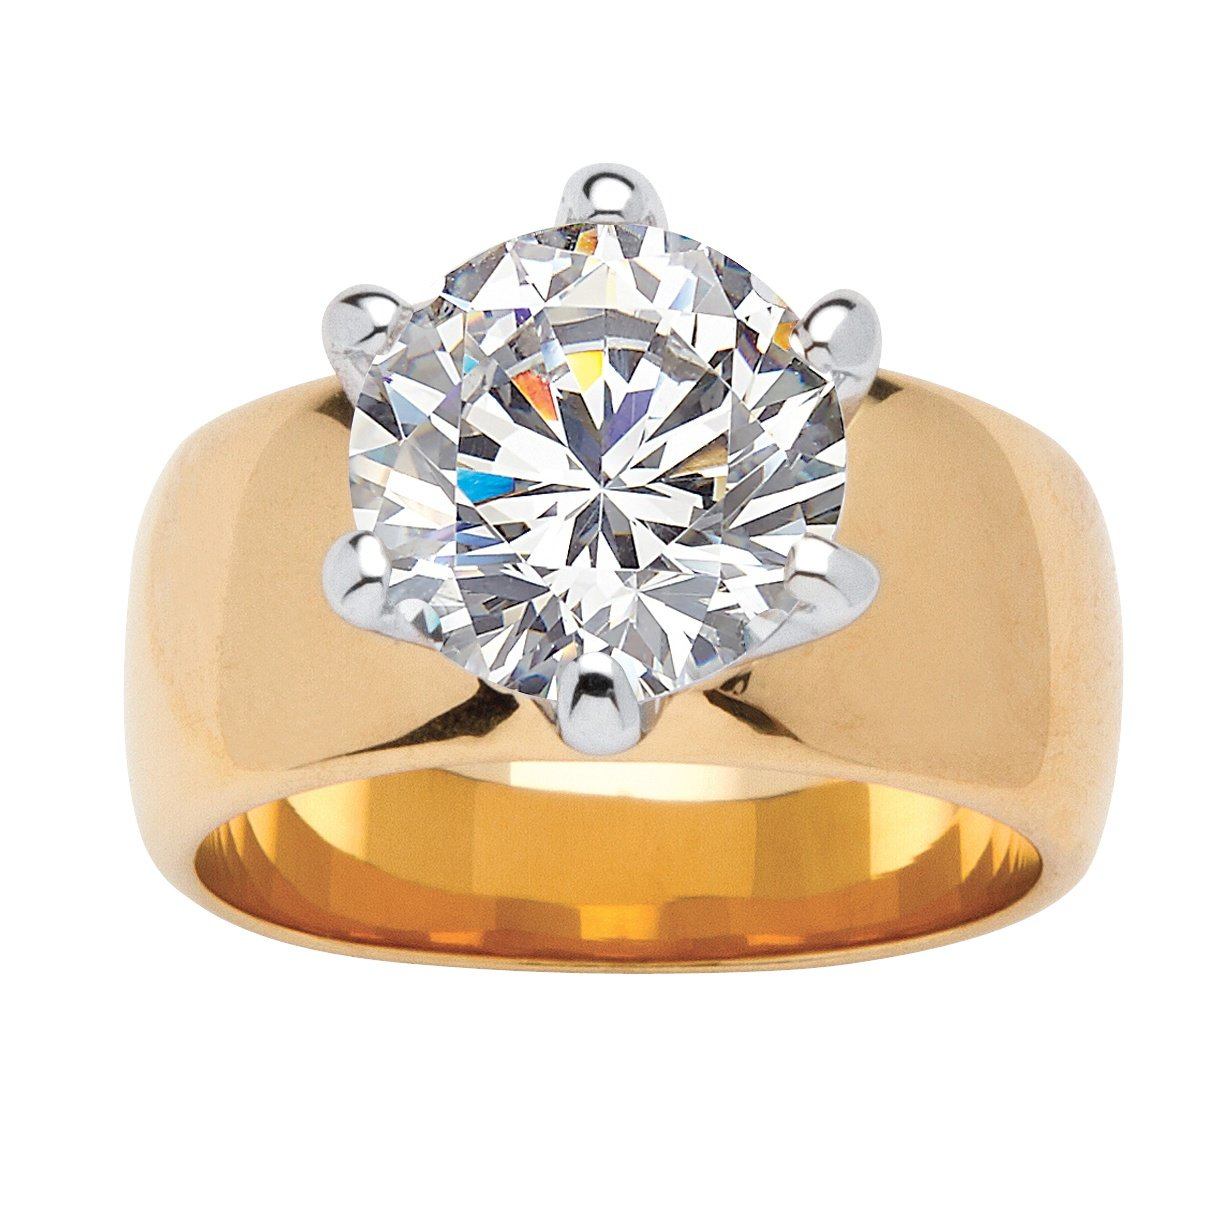 Palm Beach Jewelry Round White Cubic Zirconia 14k Gold-Plated Solitaire Engagement Anniversary Ring